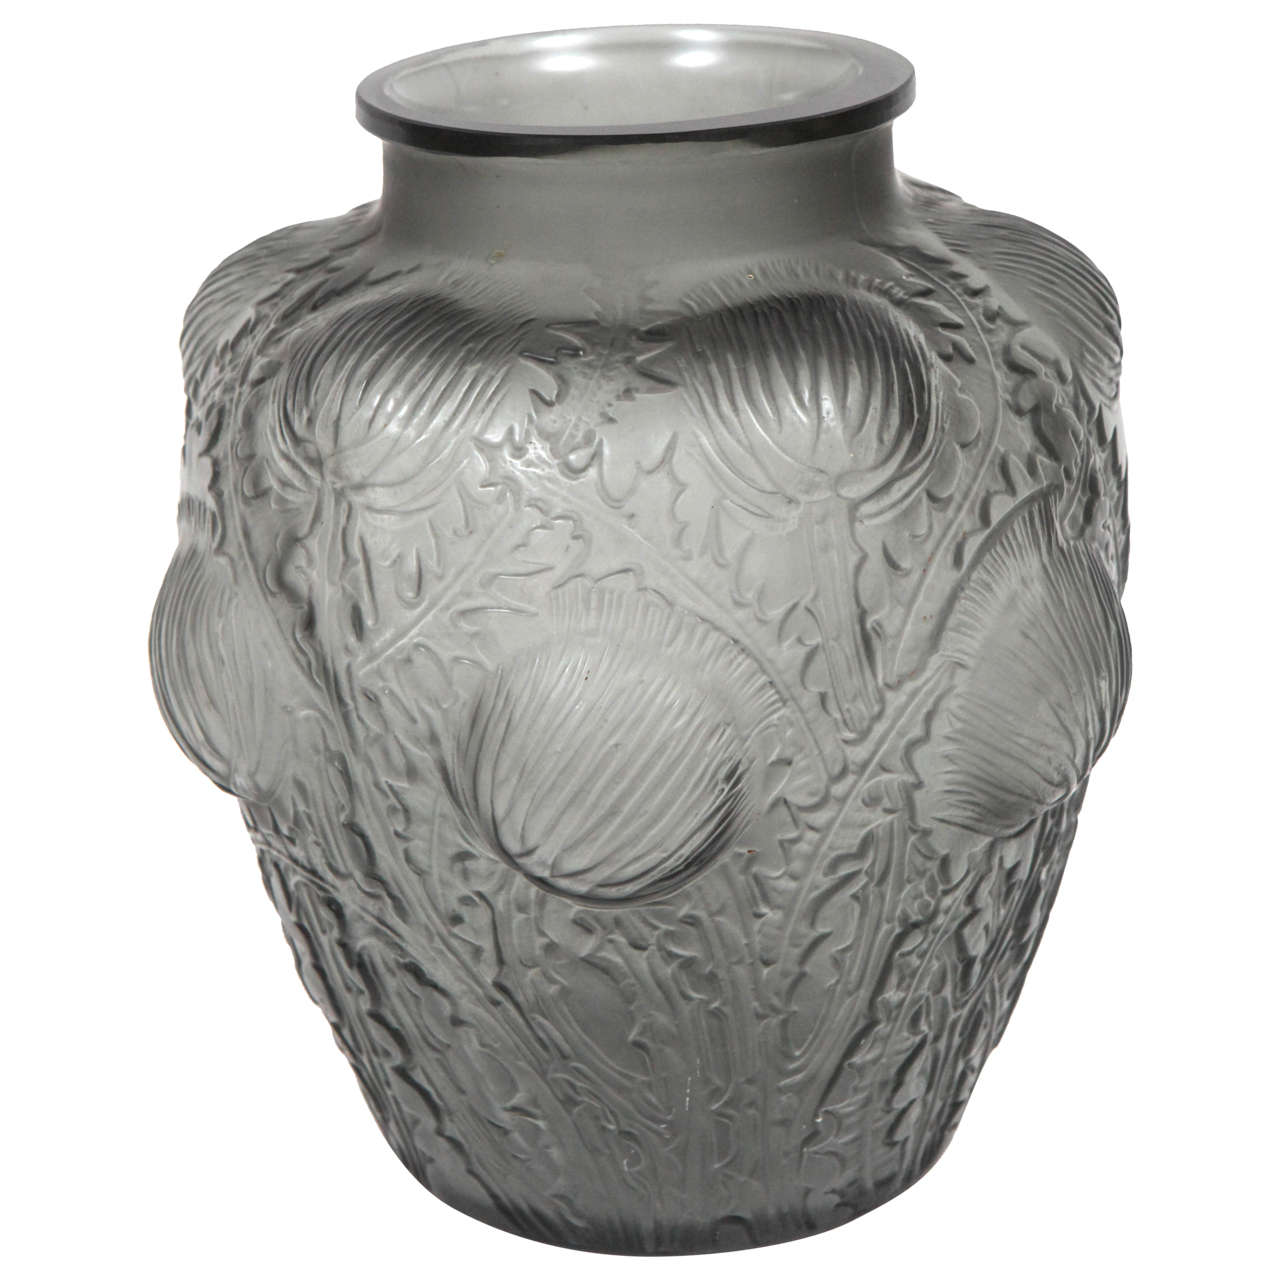 Rene lalique glass vase at 1stdibs rene lalique glass vase for sale reviewsmspy